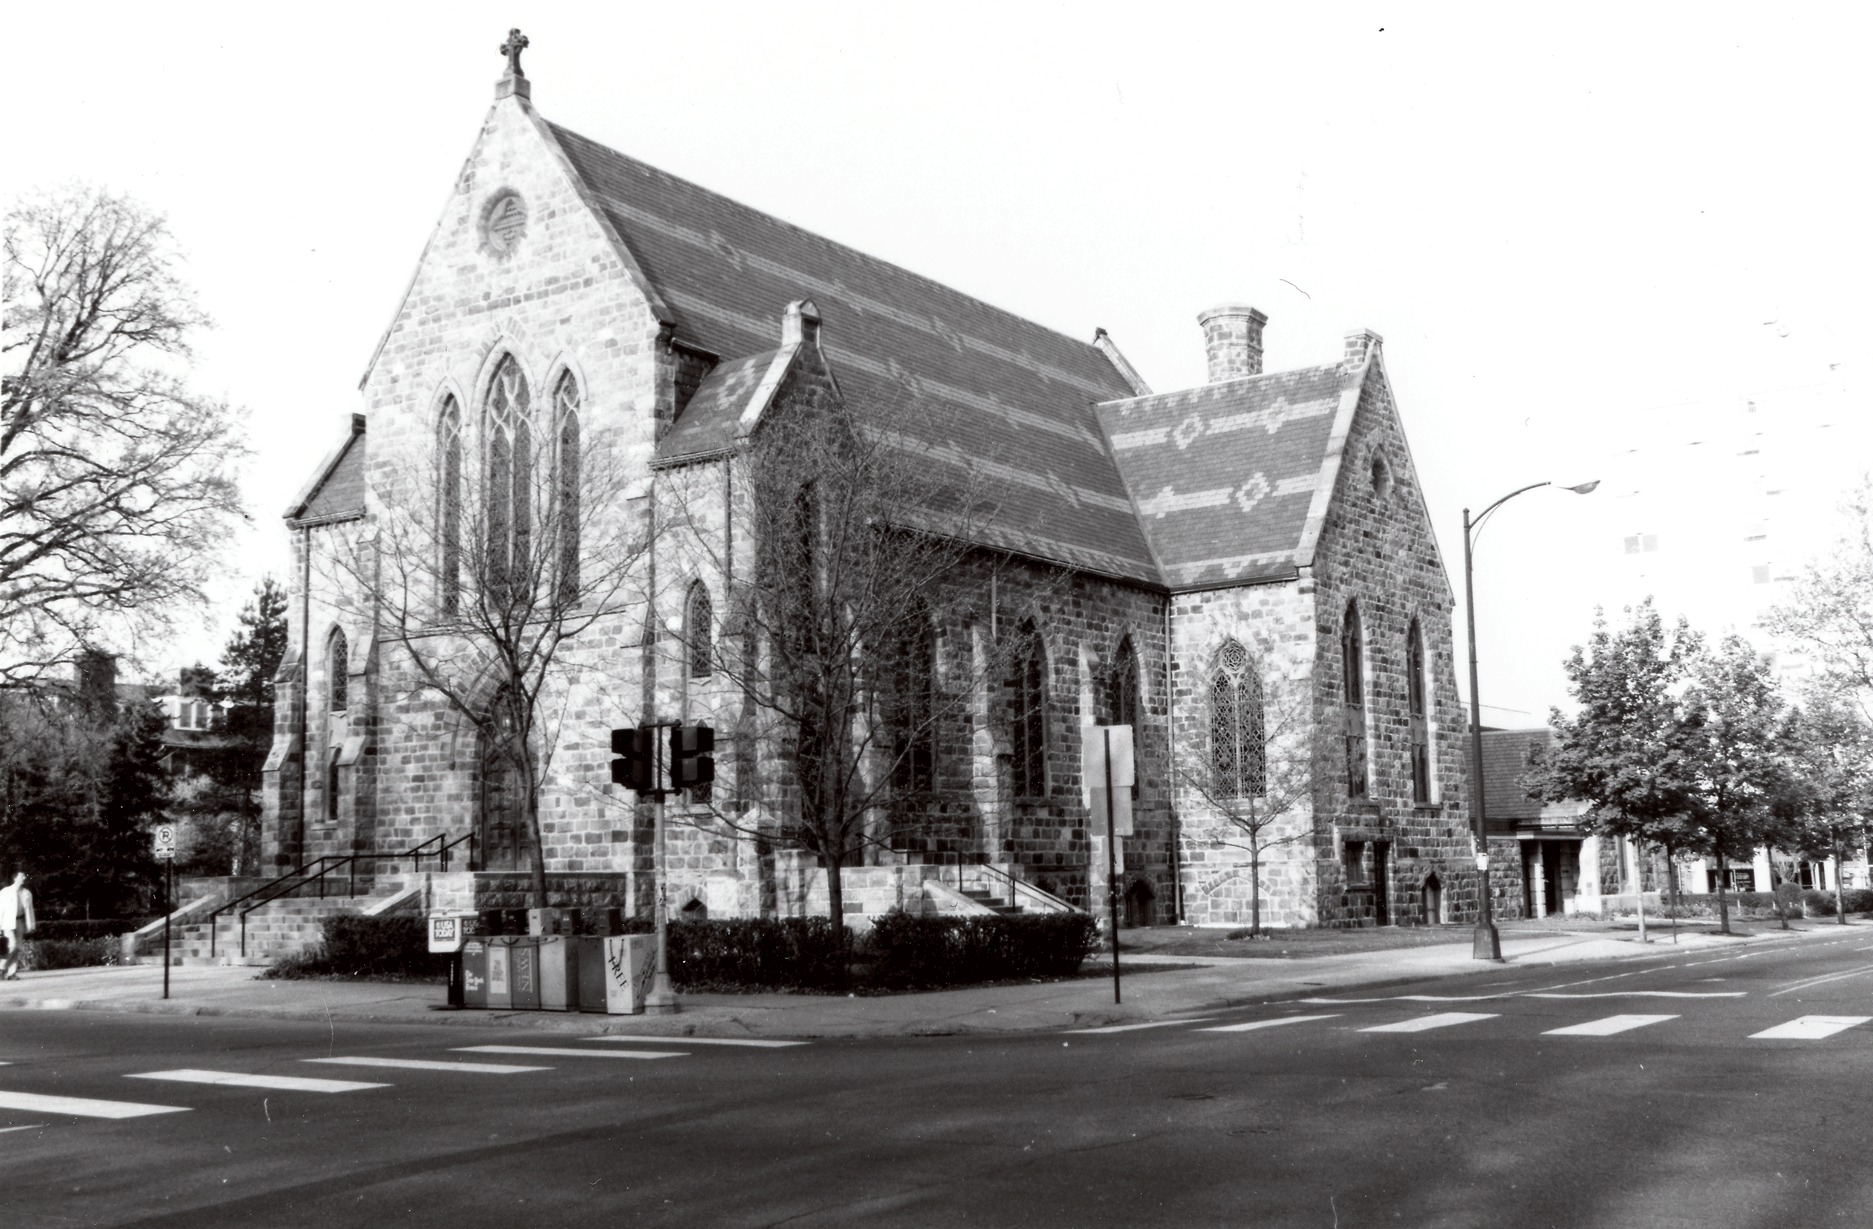 First Congregational Church, 1872-1876 image